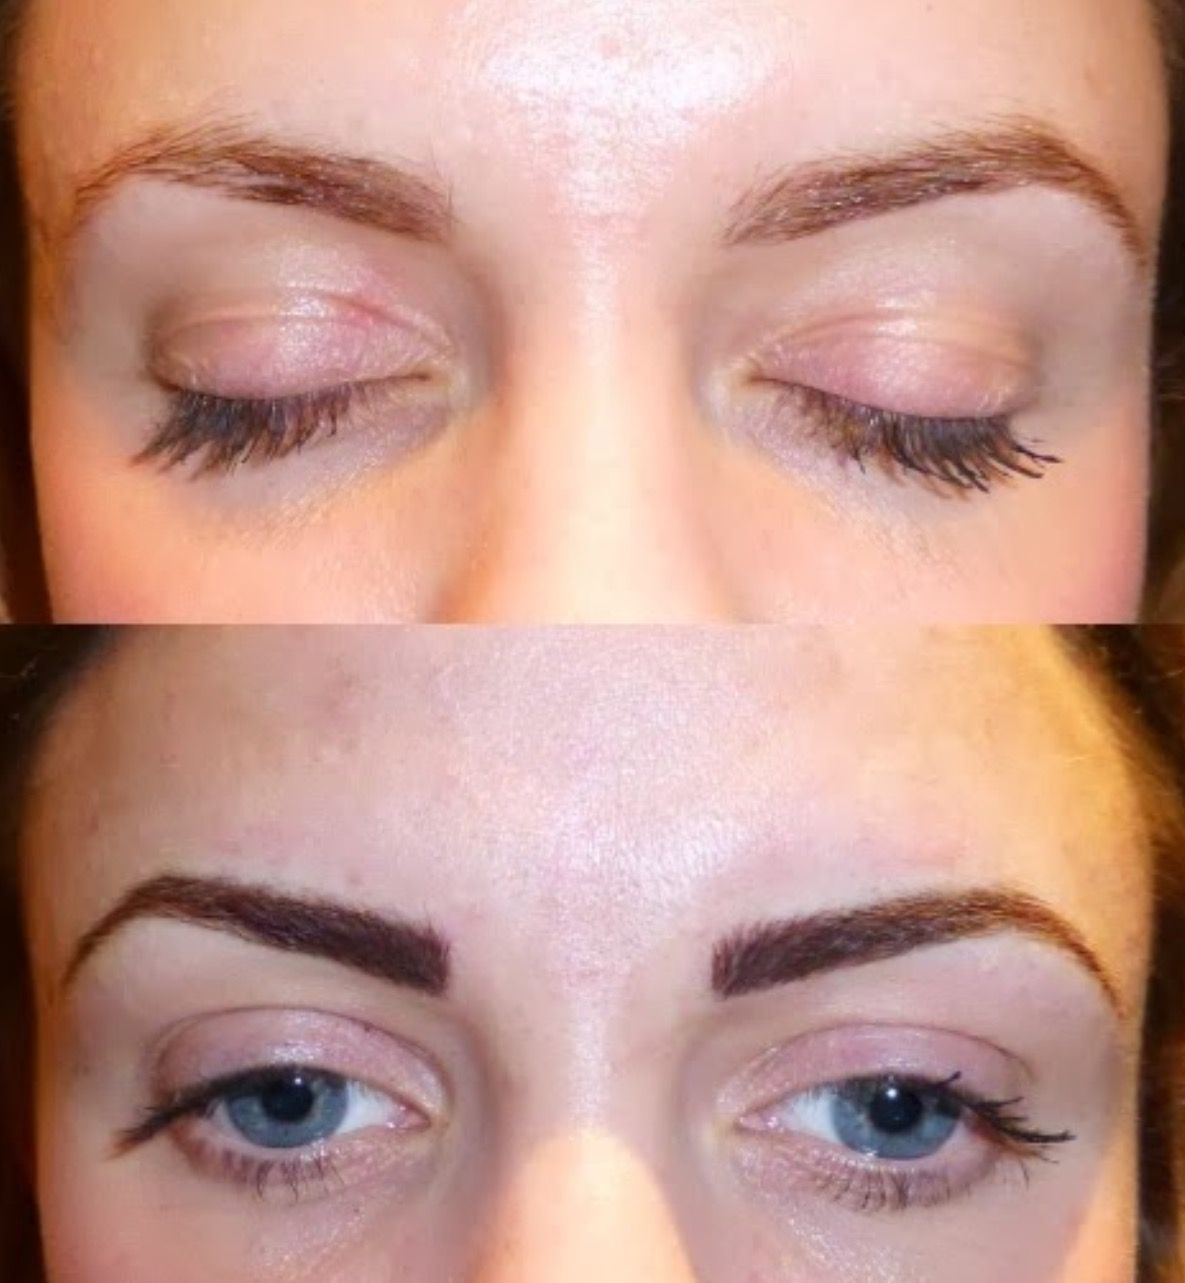 permanent eyebrows before and after photos of fabulously flawless